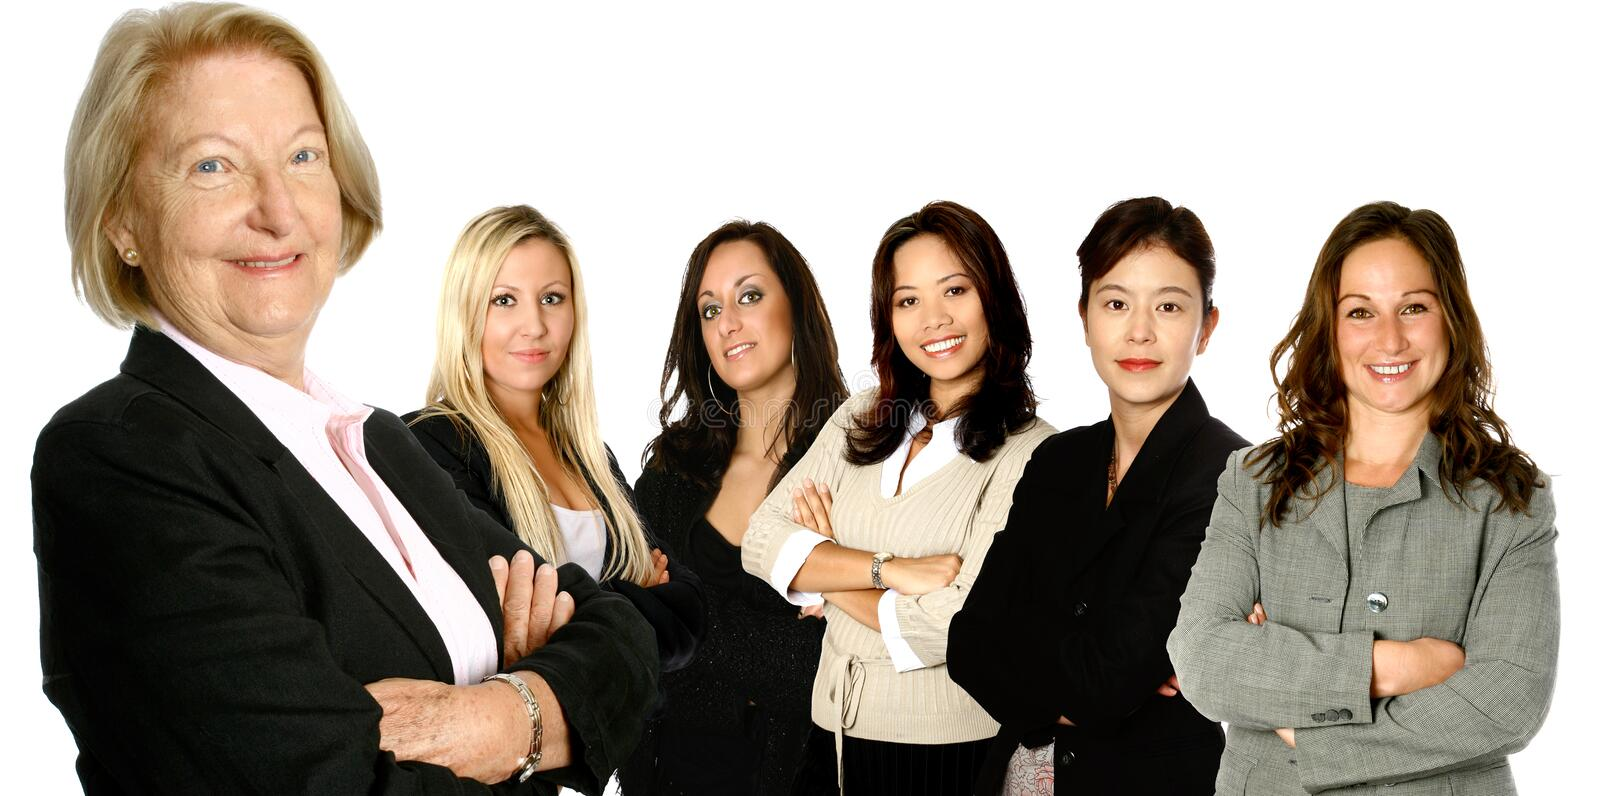 Senior leader and 5 team stock photography